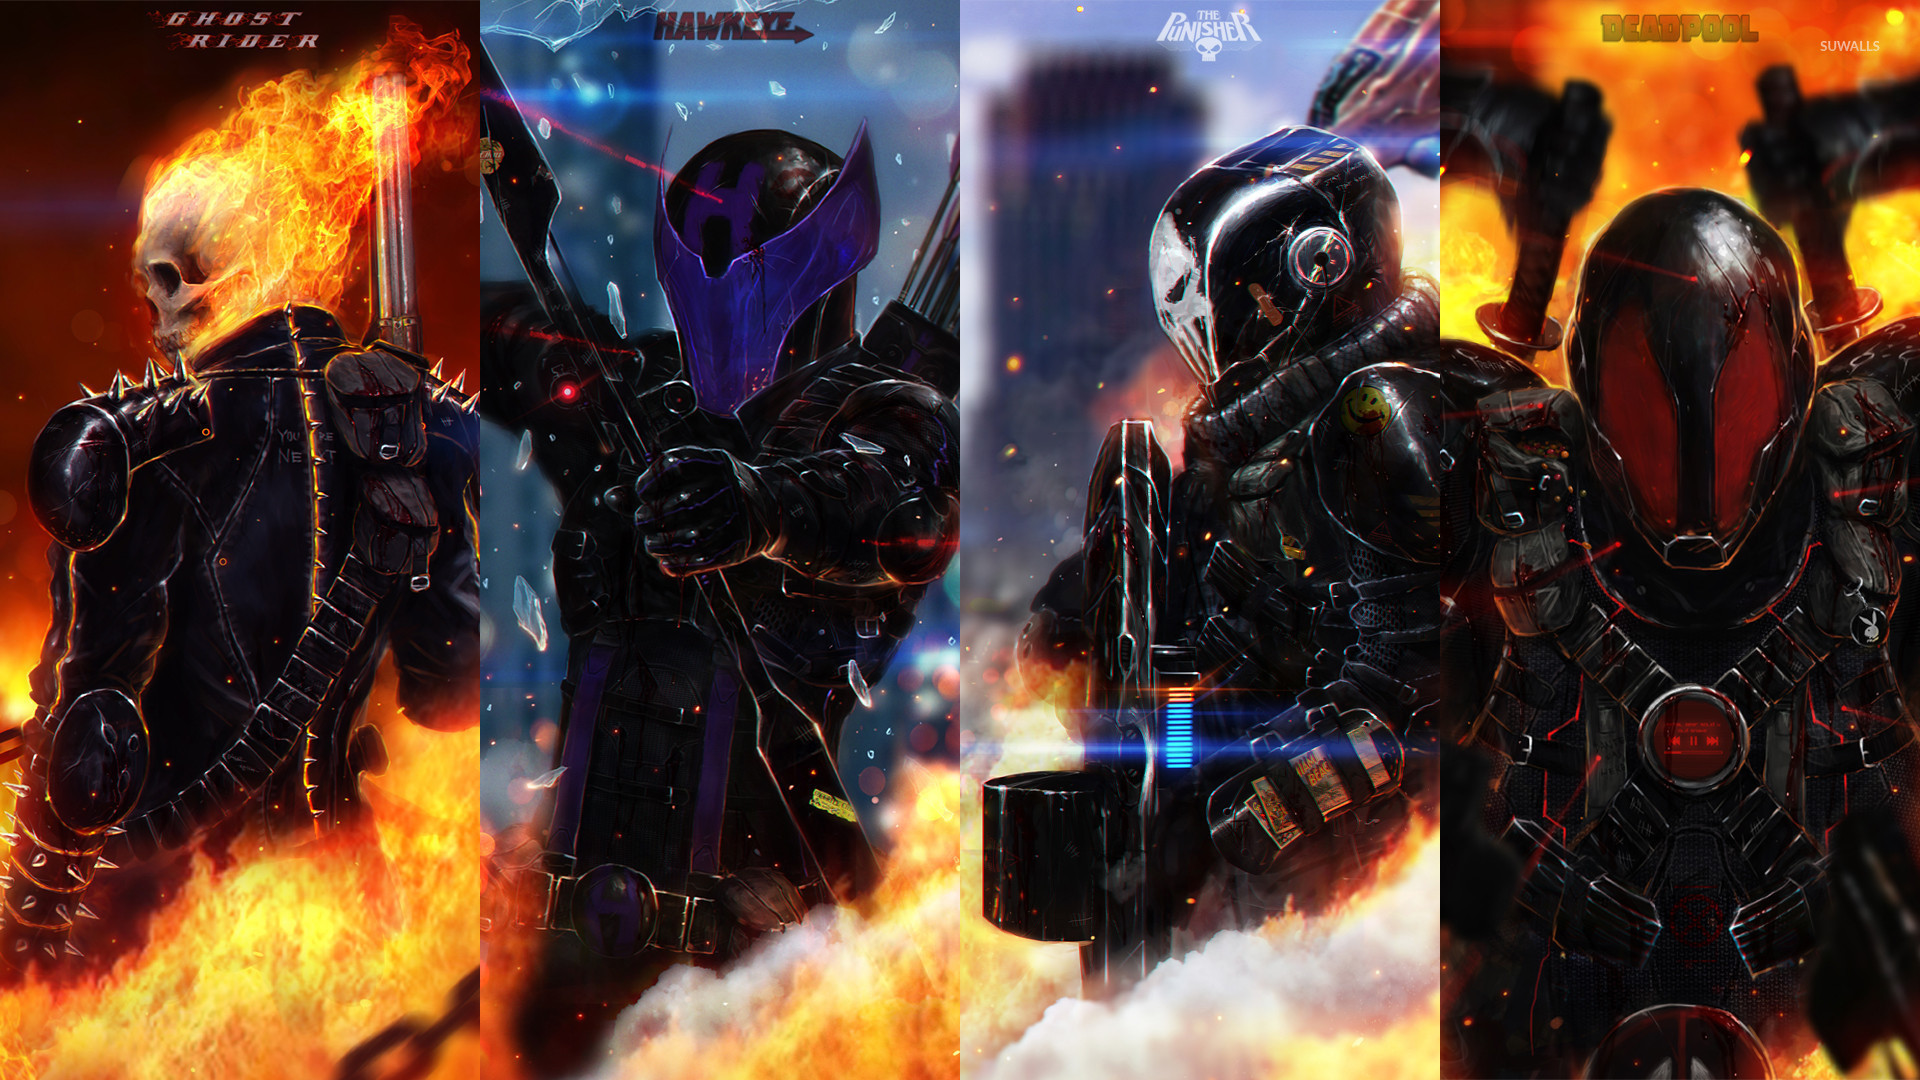 1920x1080 Ghost Rider, Hawkeye, The Punisher and Deadpool wallpaper  jpg